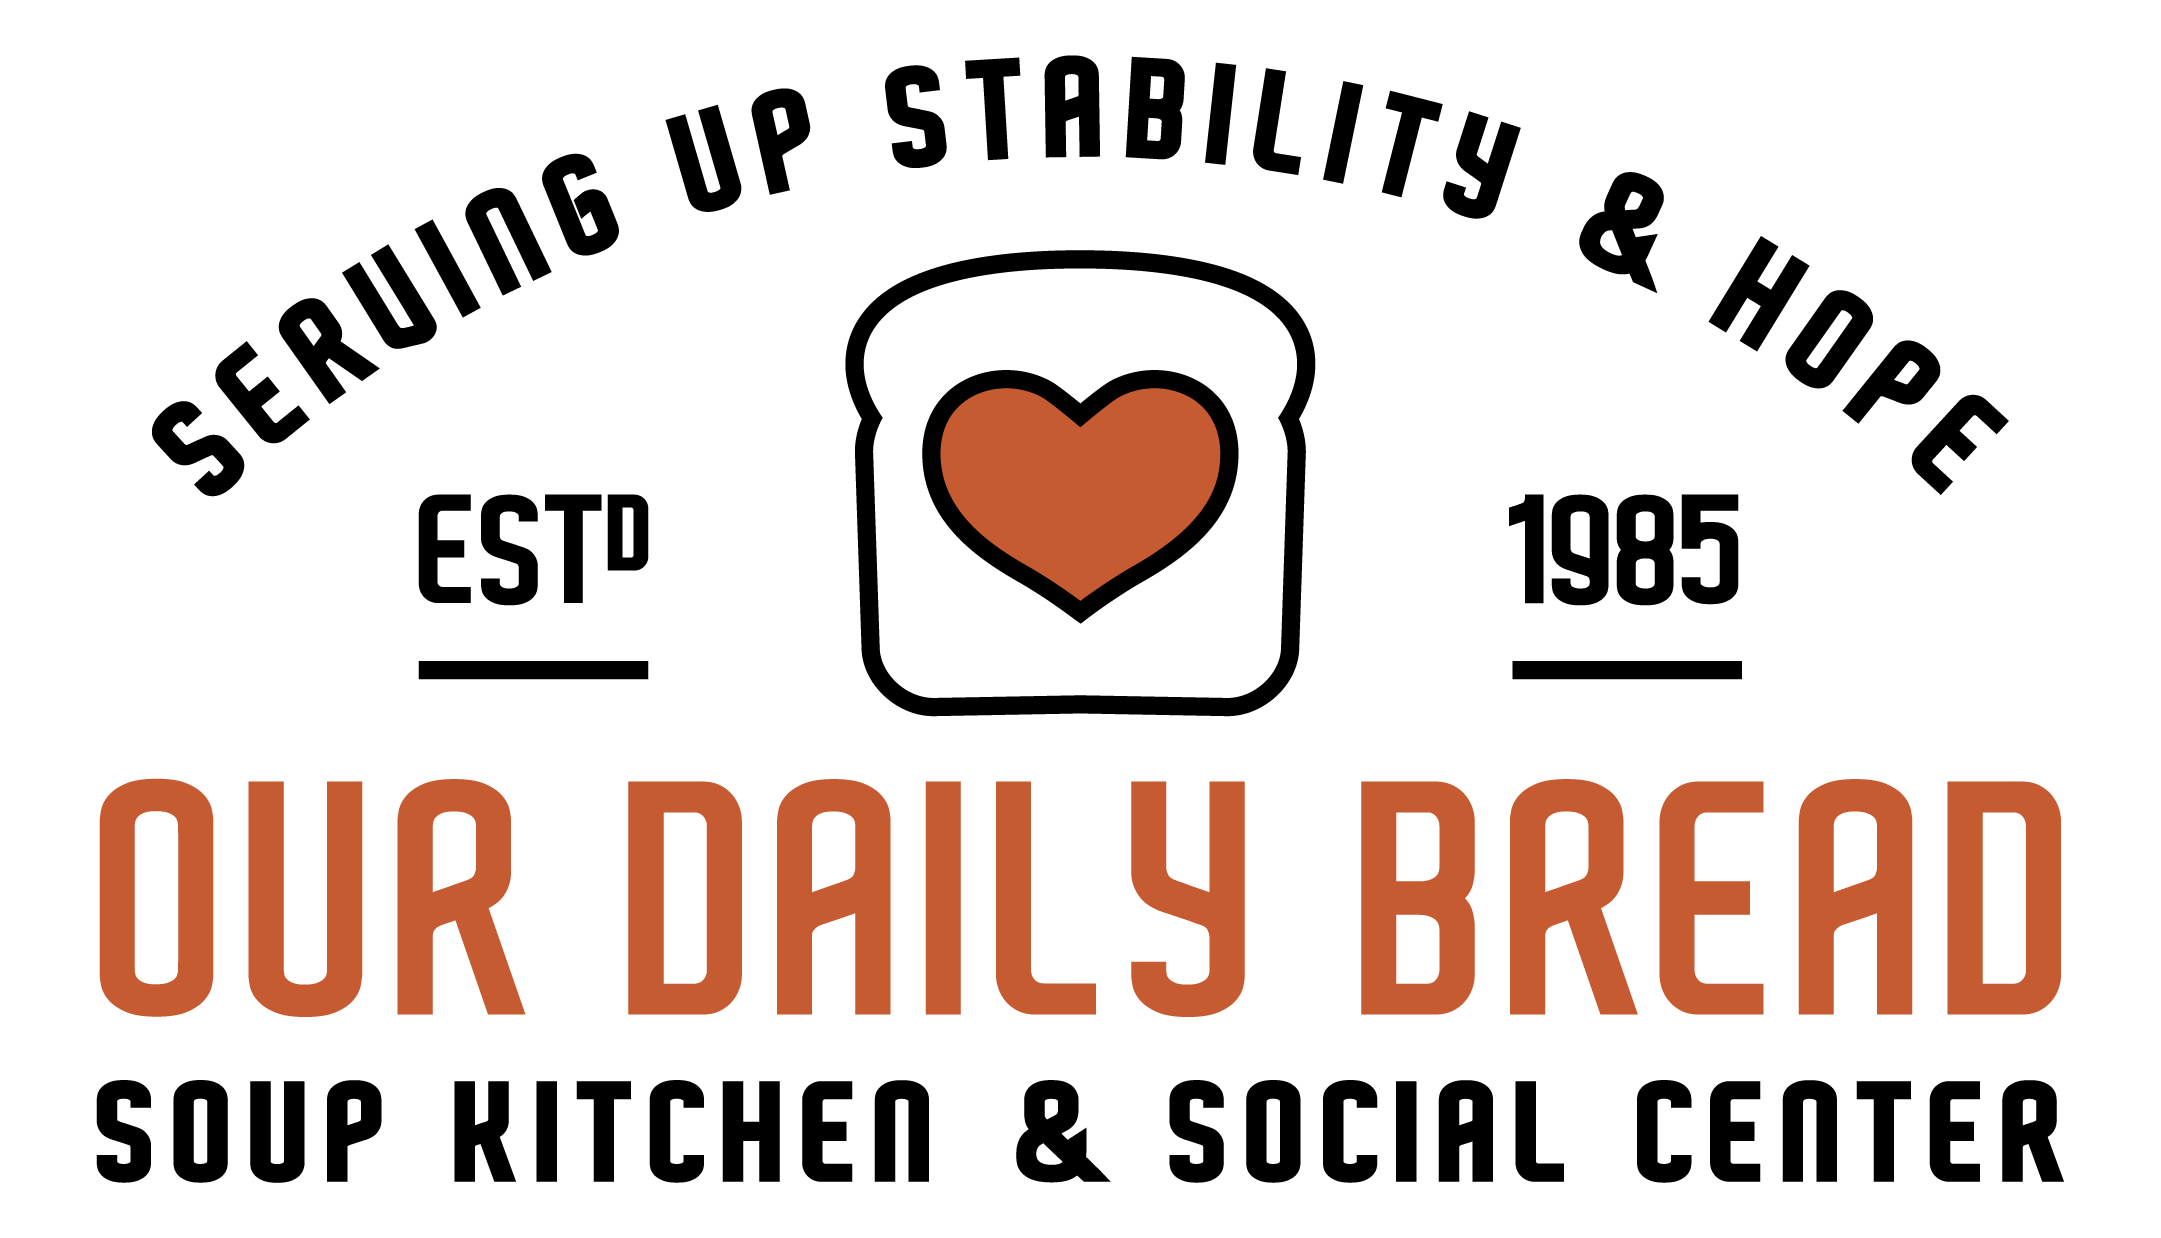 About Us Our Daily Bread Soup Kitchen And Social Center